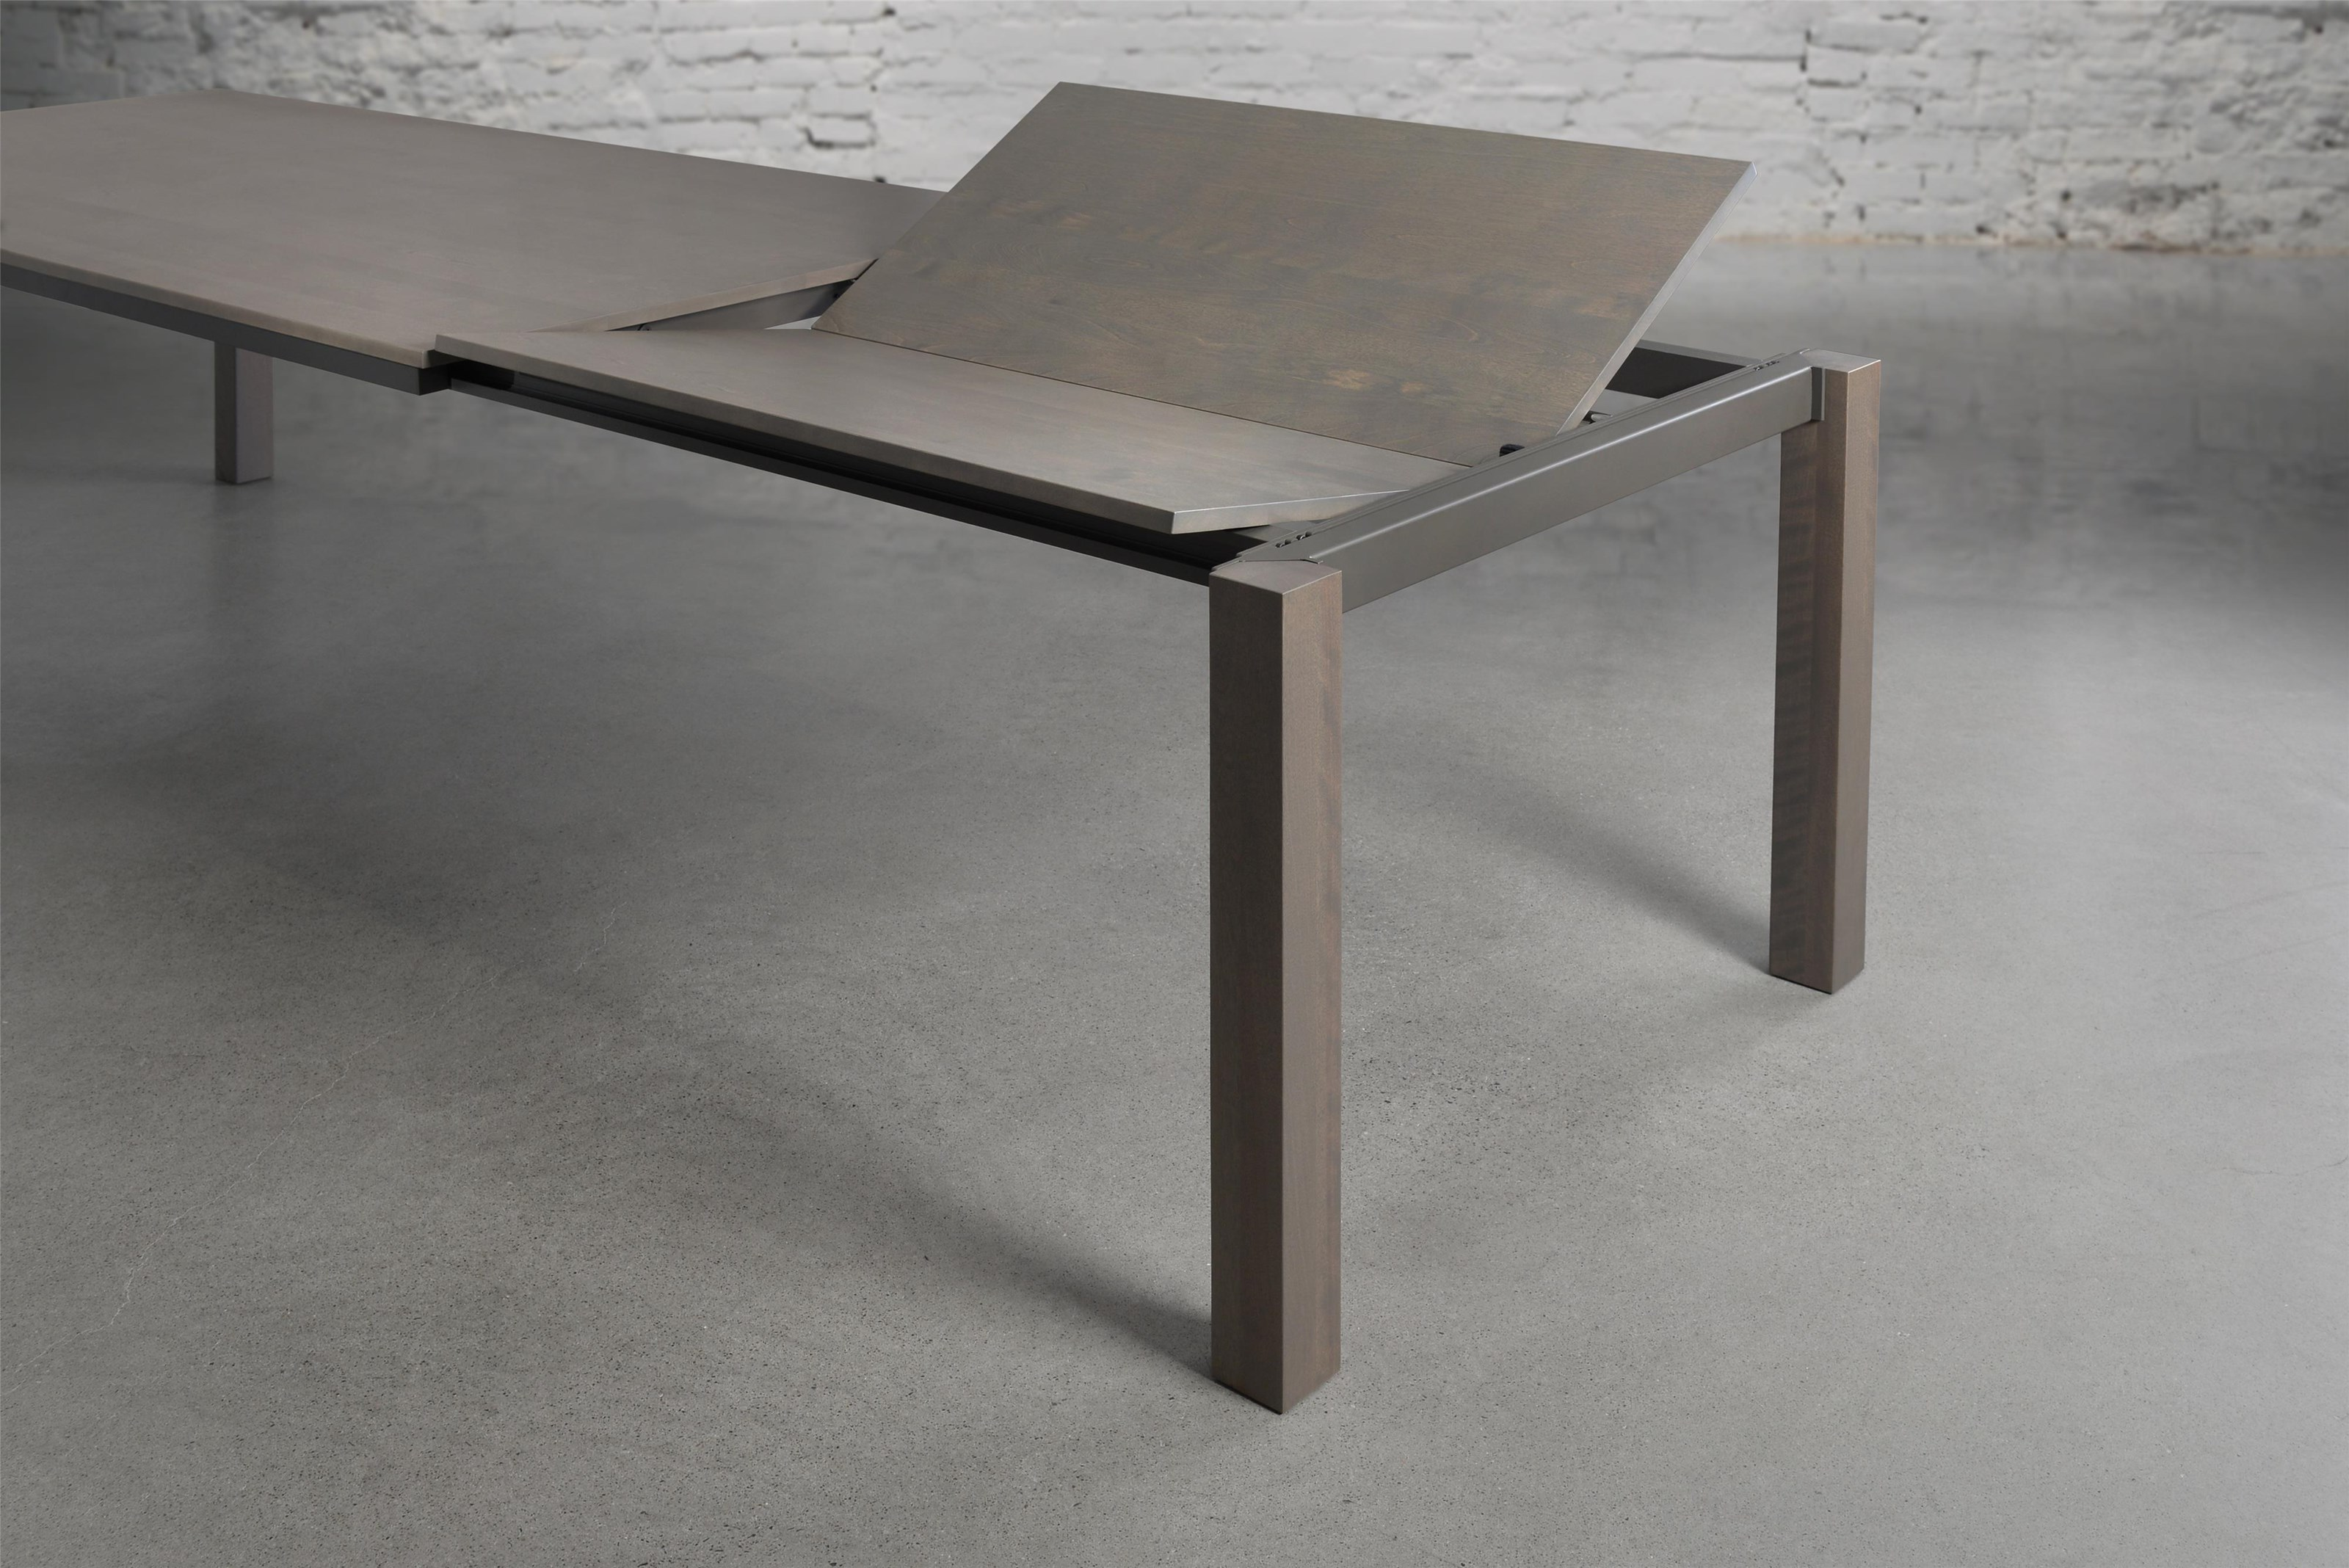 Enternity ETERNITY Dining Table by Trica at Stoney Creek Furniture